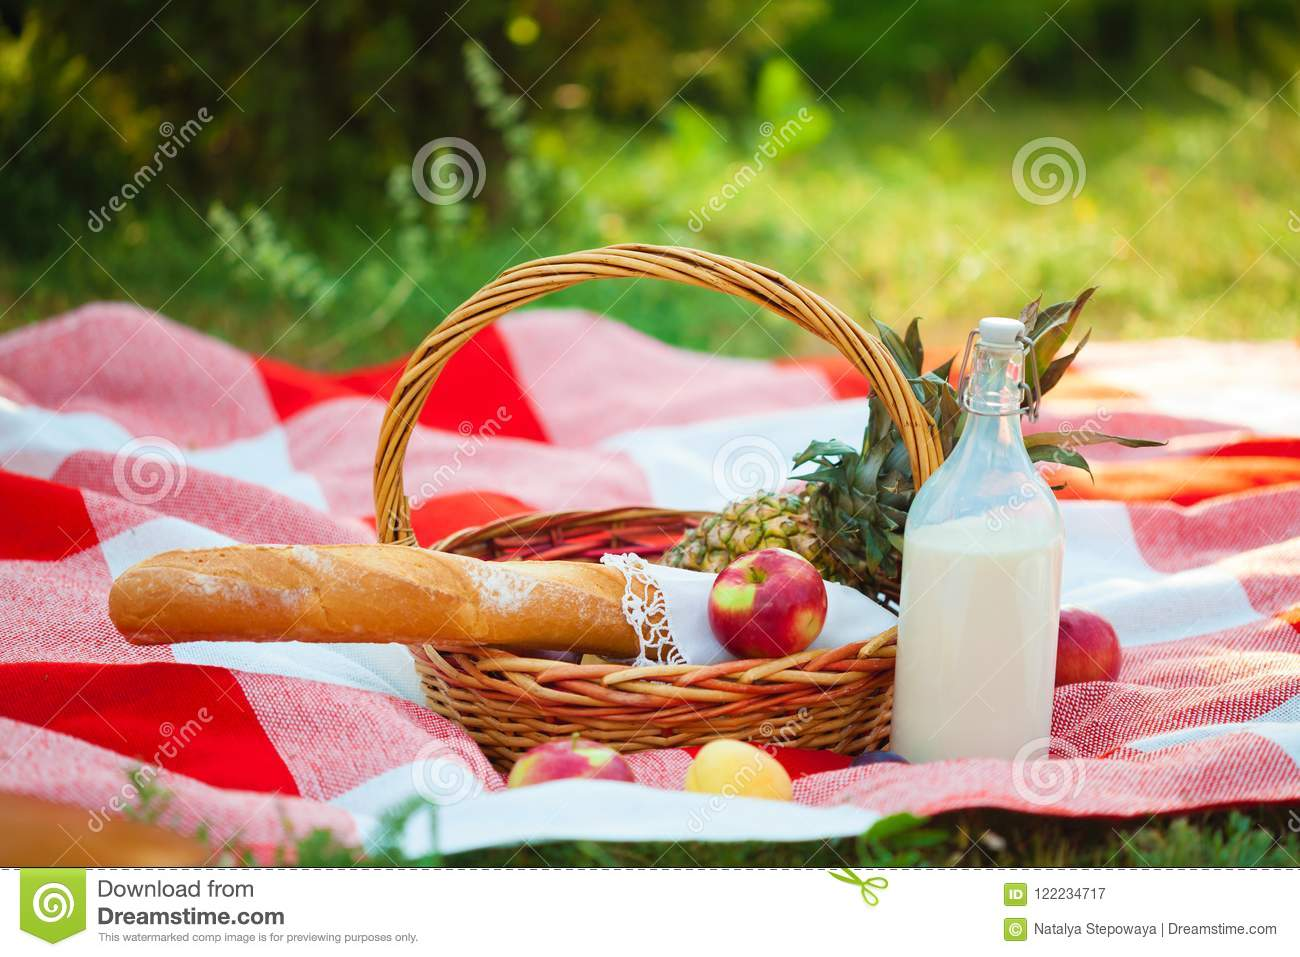 Picnic basket, fruit, milk, apples, pineappe summer, rest, plaid, grass Close up